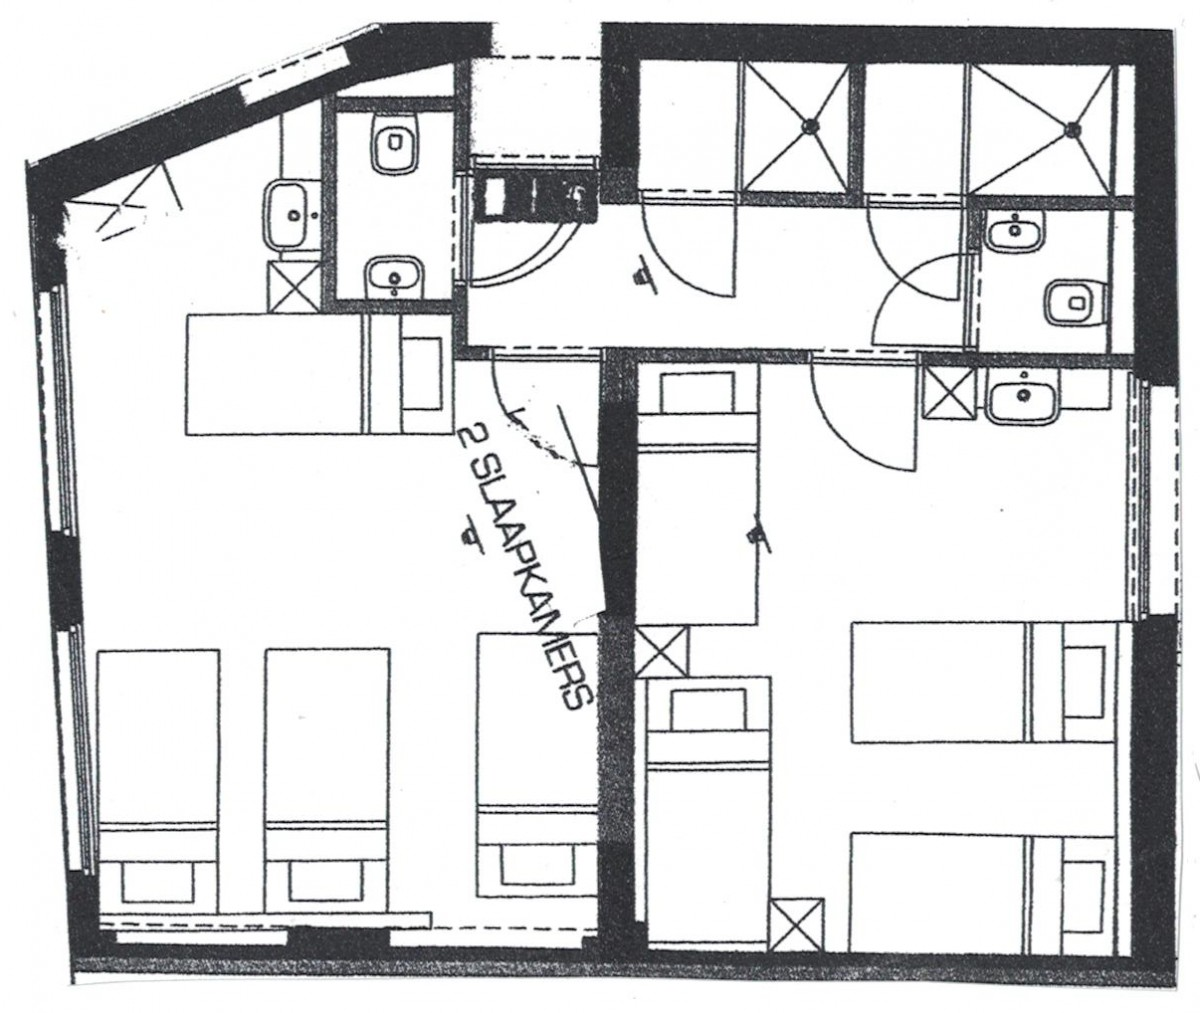 Image of Budget unit 2 rooms (1-10p, 2 private bathrooms)